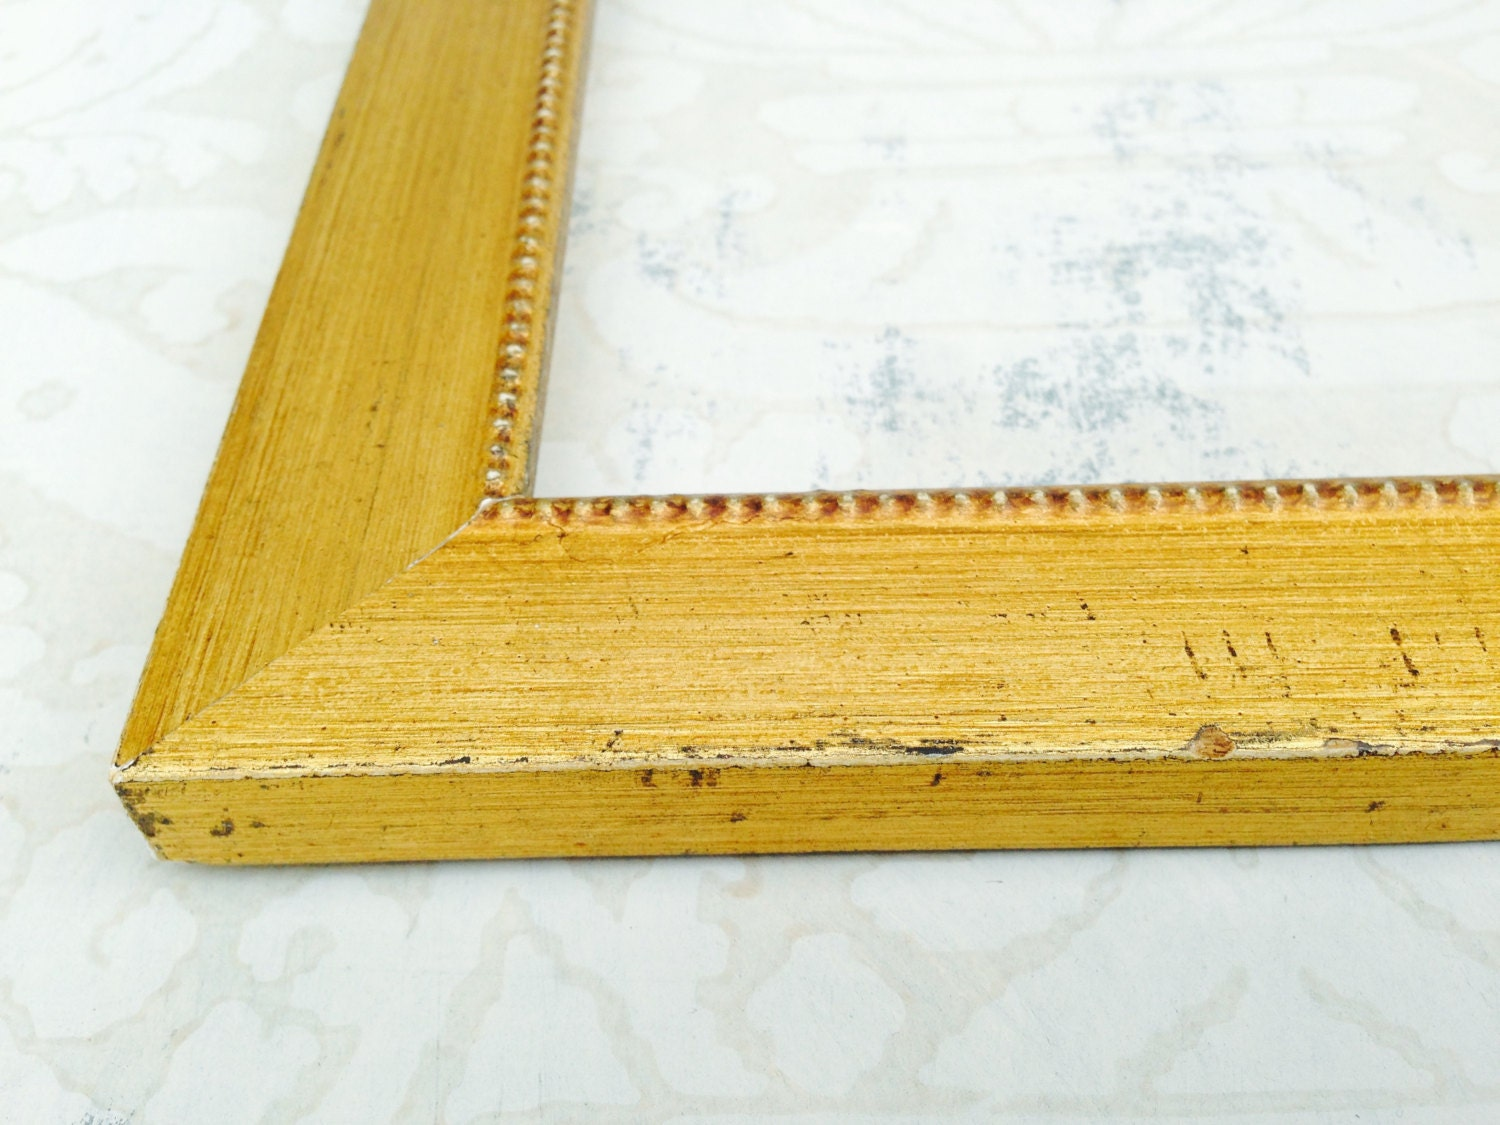 shabby chic vintage gold picture frame 4x4 4x6 5x7 8x8 8x10 85x11 11x14 16x20 distressed gold photo frame gold wedding frame